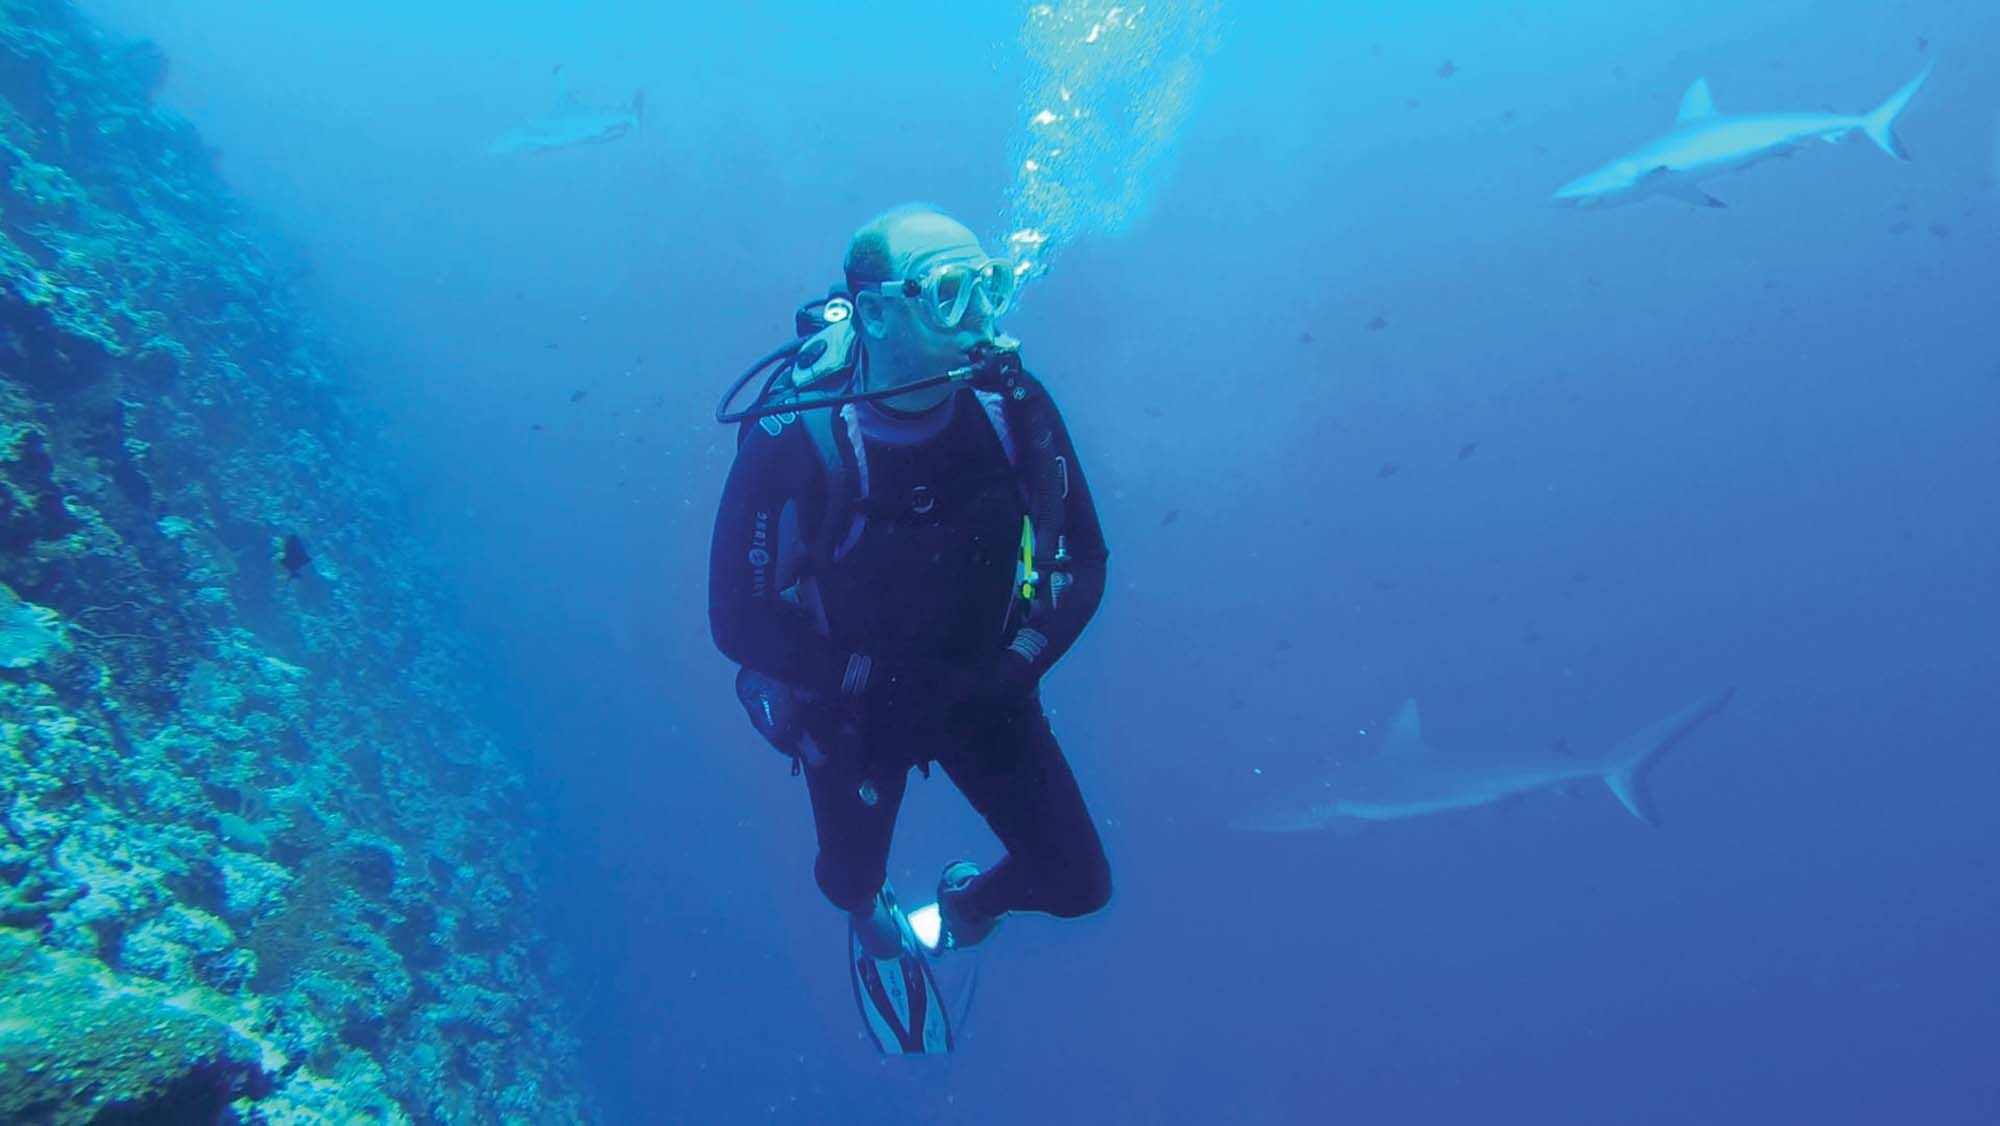 His Serene Highness Prince Albert II of Monaco is a qualified diver as he is seen here exploring the ocean depths (photo by Explorations de Monaco)